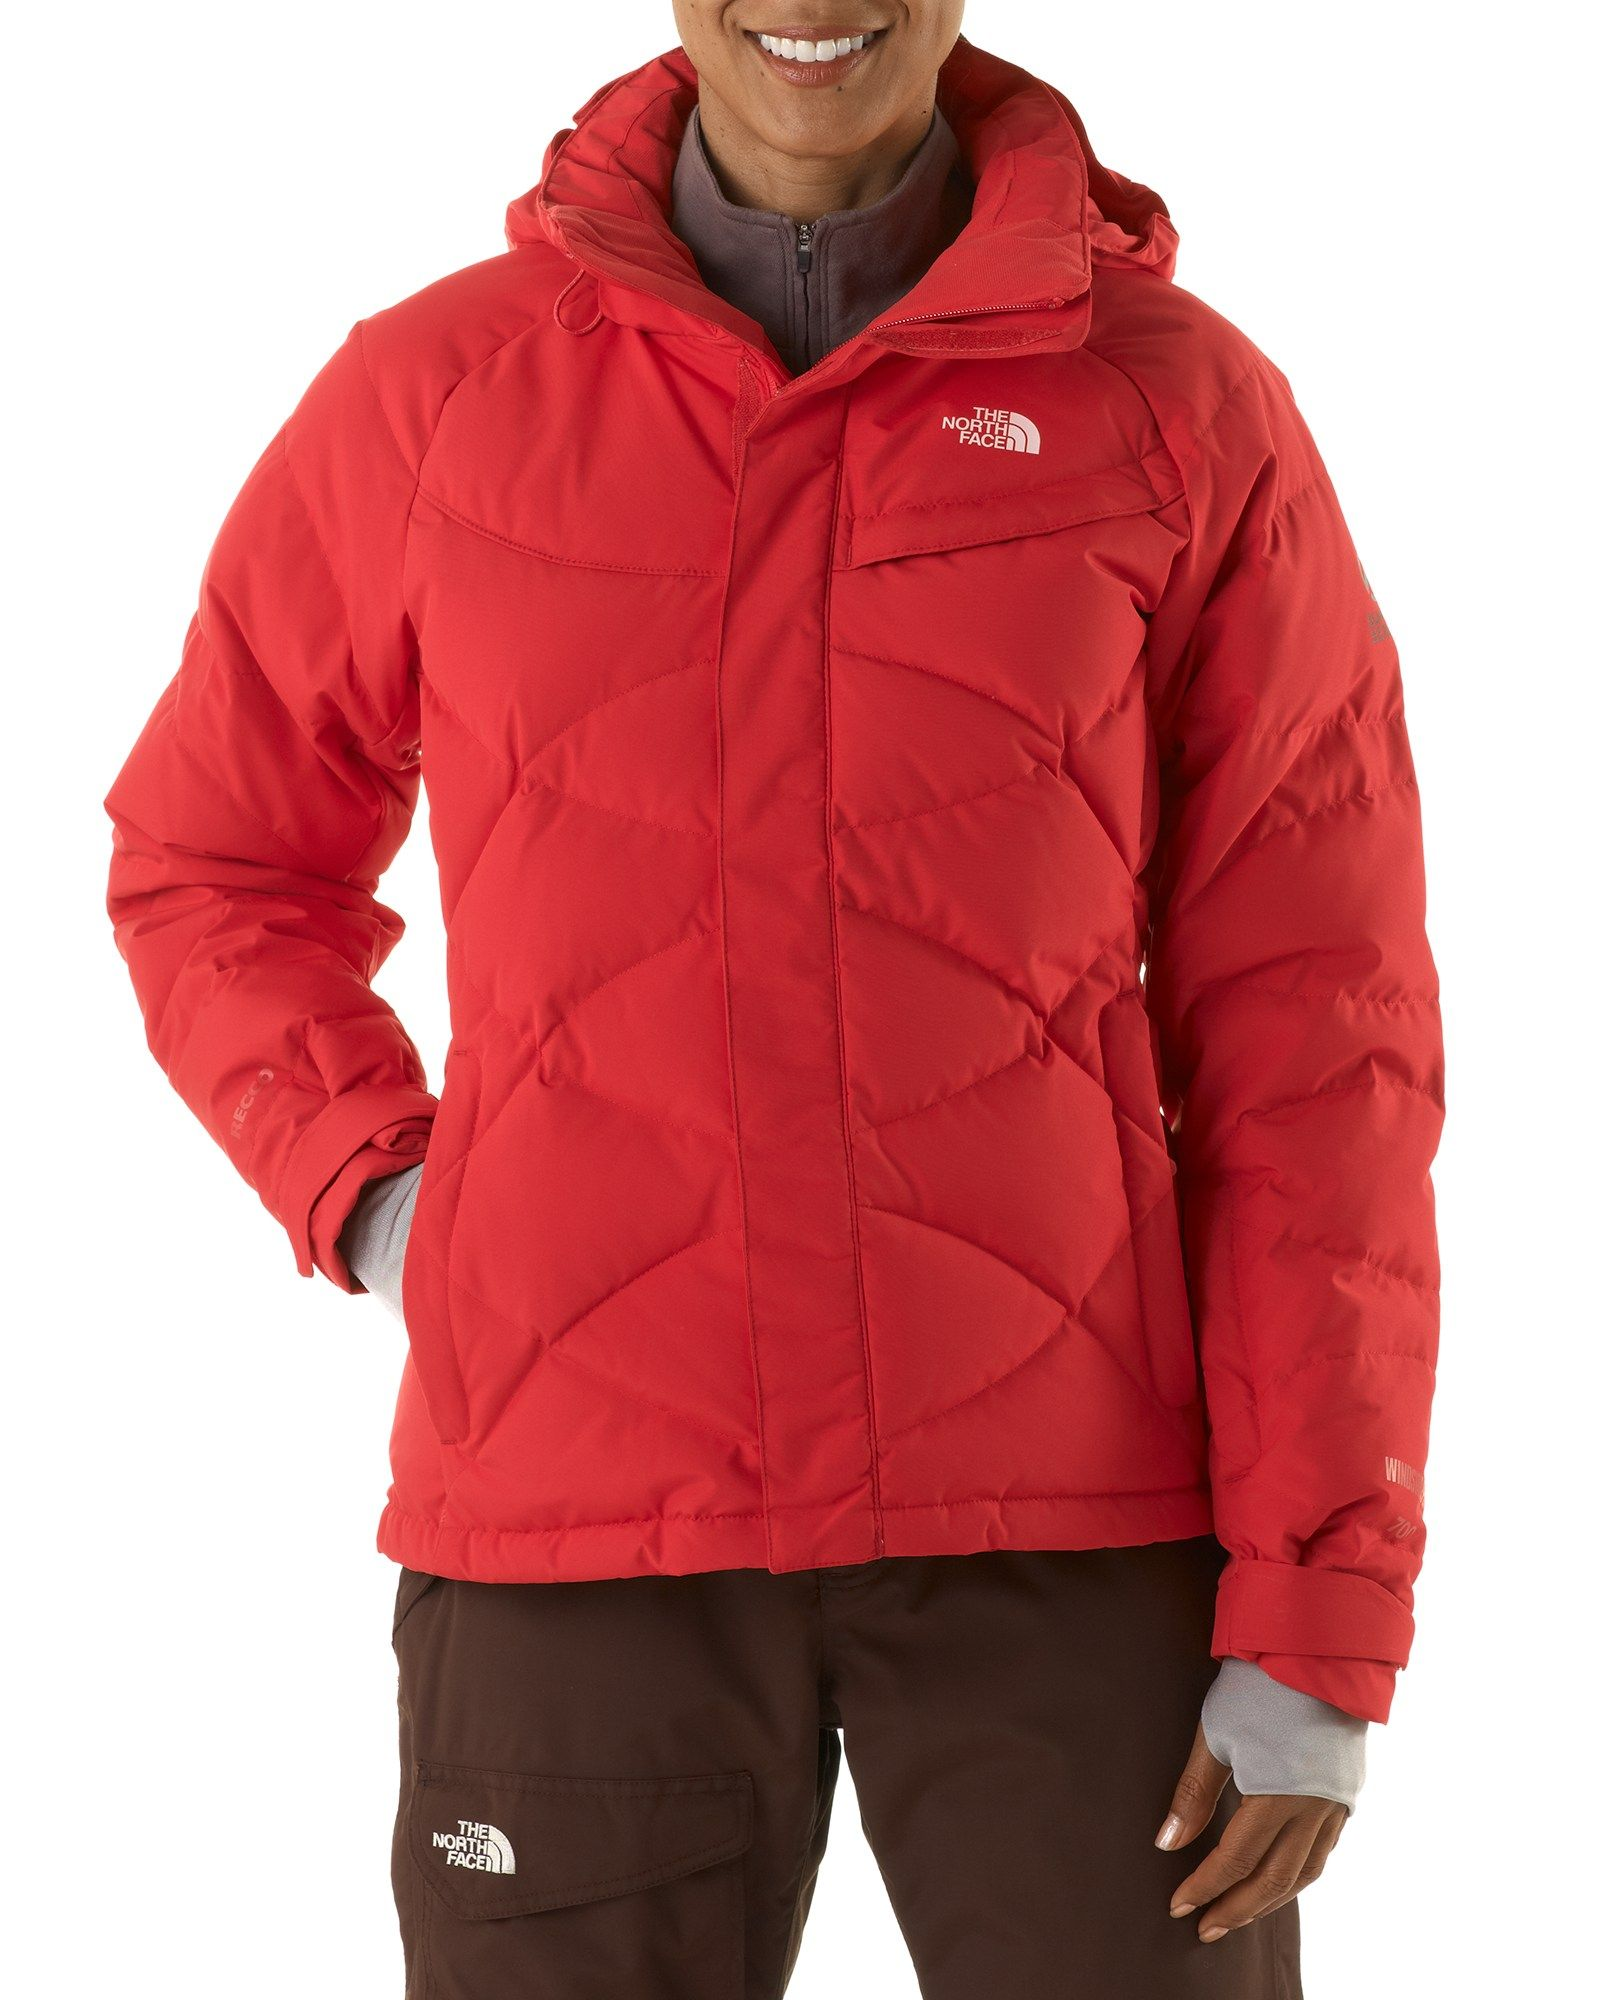 The North Face Helicity Down Insulated Jacket Women S Rei Co Op Jackets For Women Insulated Jacket Women Jackets [ 2000 x 1609 Pixel ]